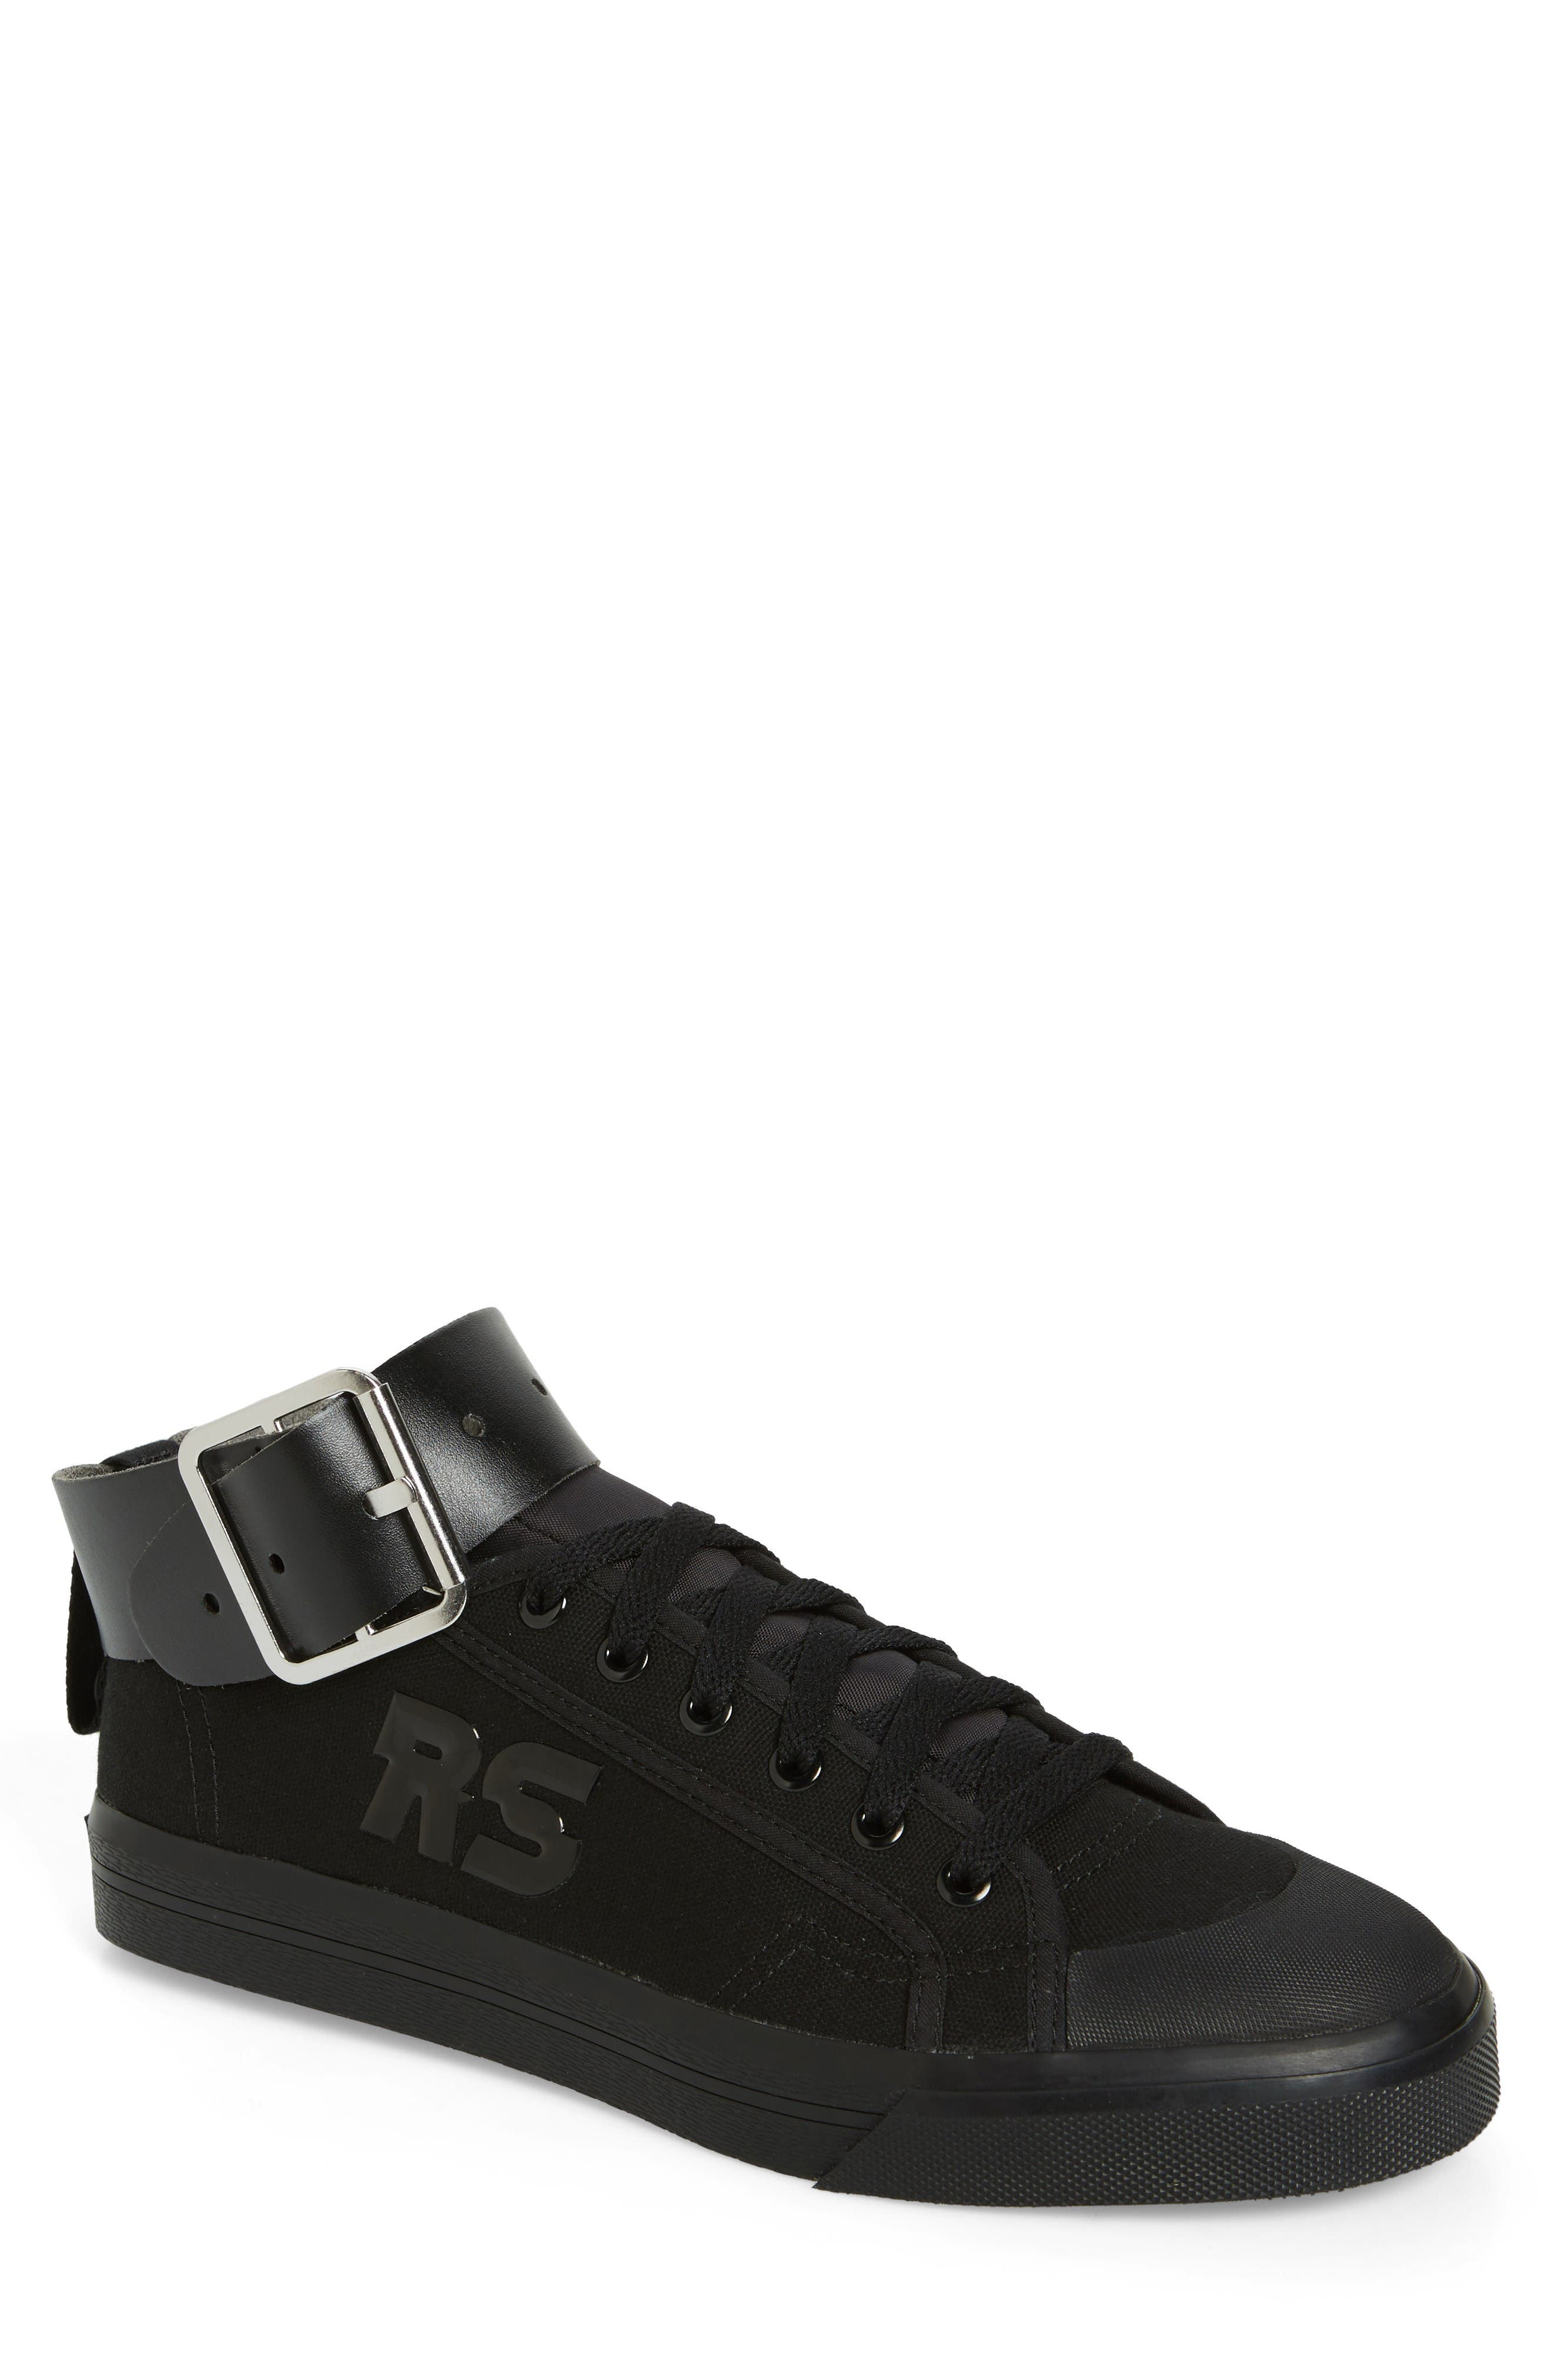 ADIDAS BY RAF SIMONS Spirit Ankle Strap Sneaker